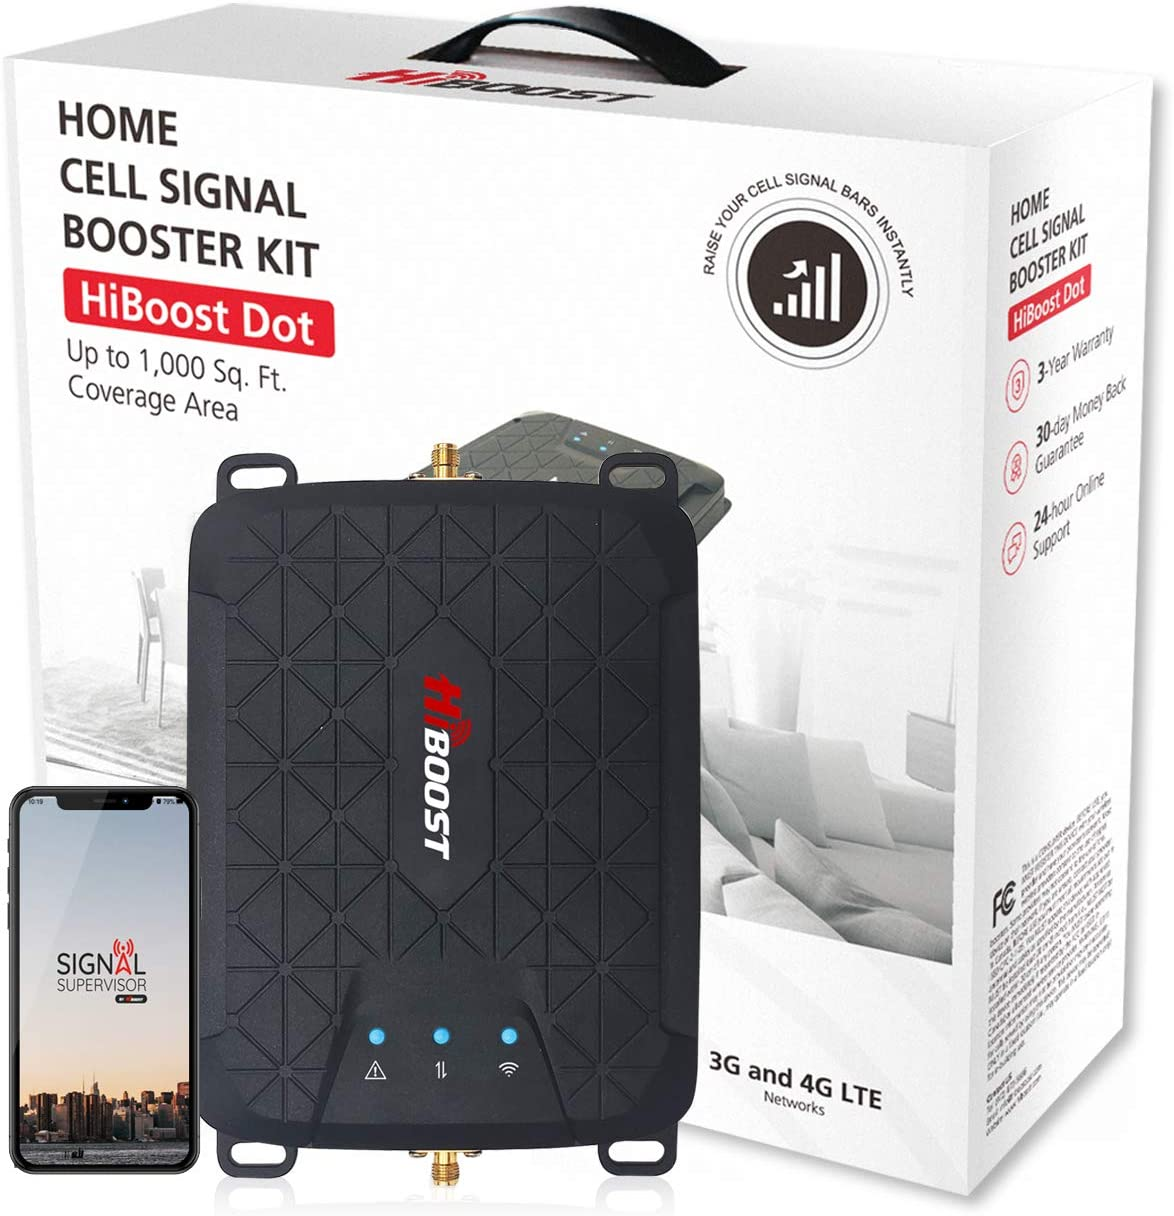 HiBoost Cell Signal Booster for Home Boost 4G LTE Data for Verizon AT&T and T-Mobile Band 12(17)/13/5 Cellular Repeater kit with High Gain Antennas and App Control